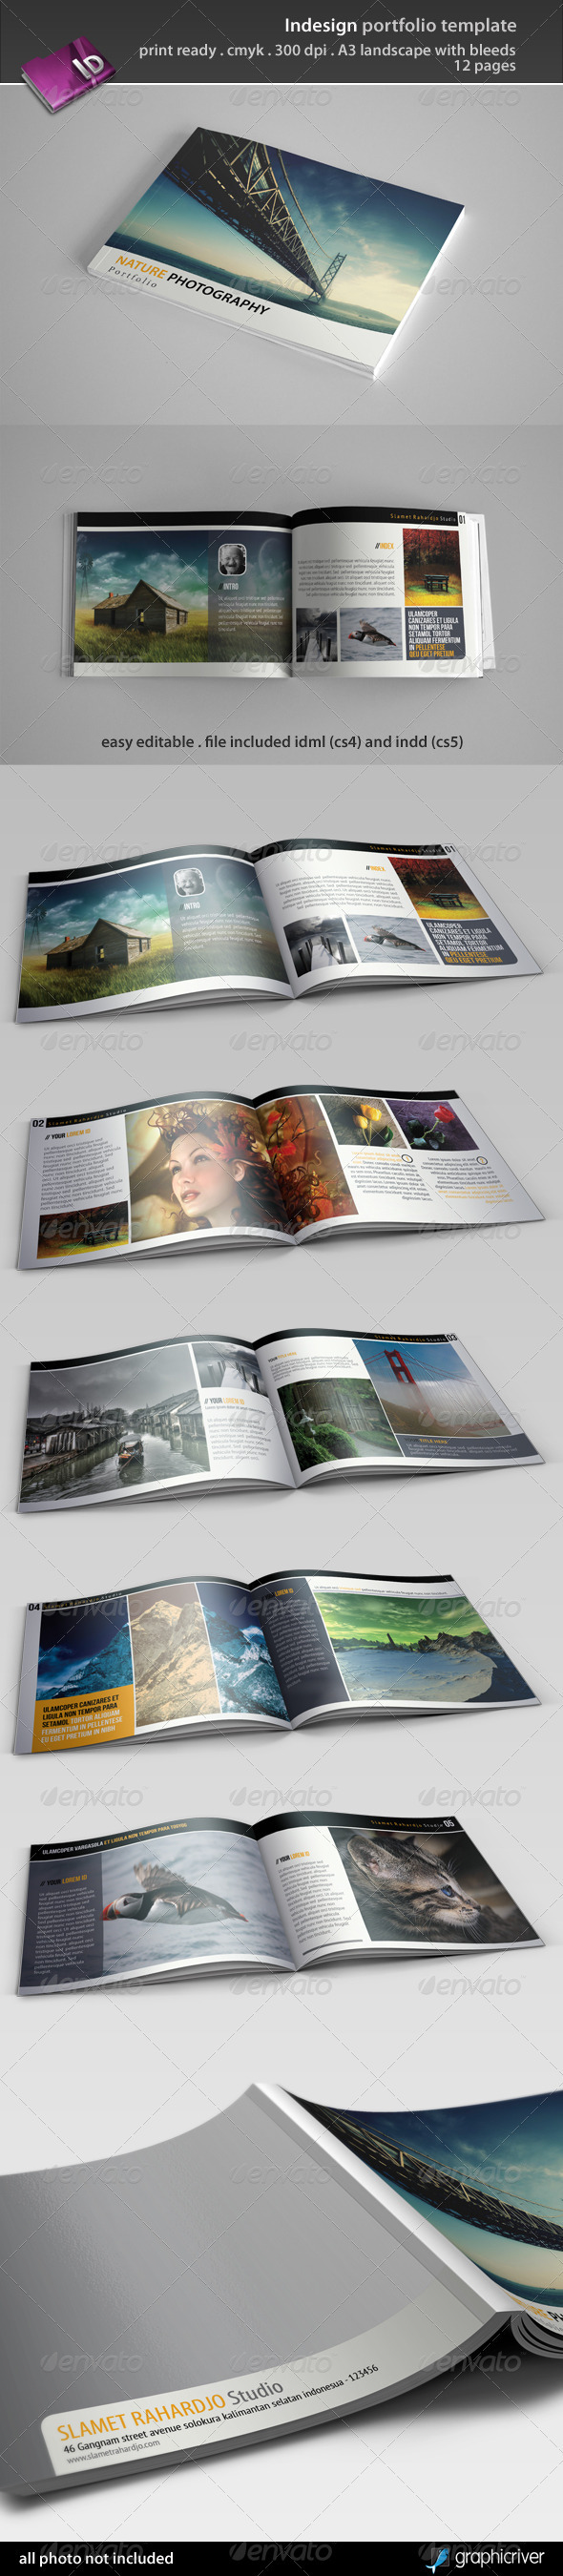 Indesign portfolio template by semutireng graphicriver for Free indesign portfolio templates